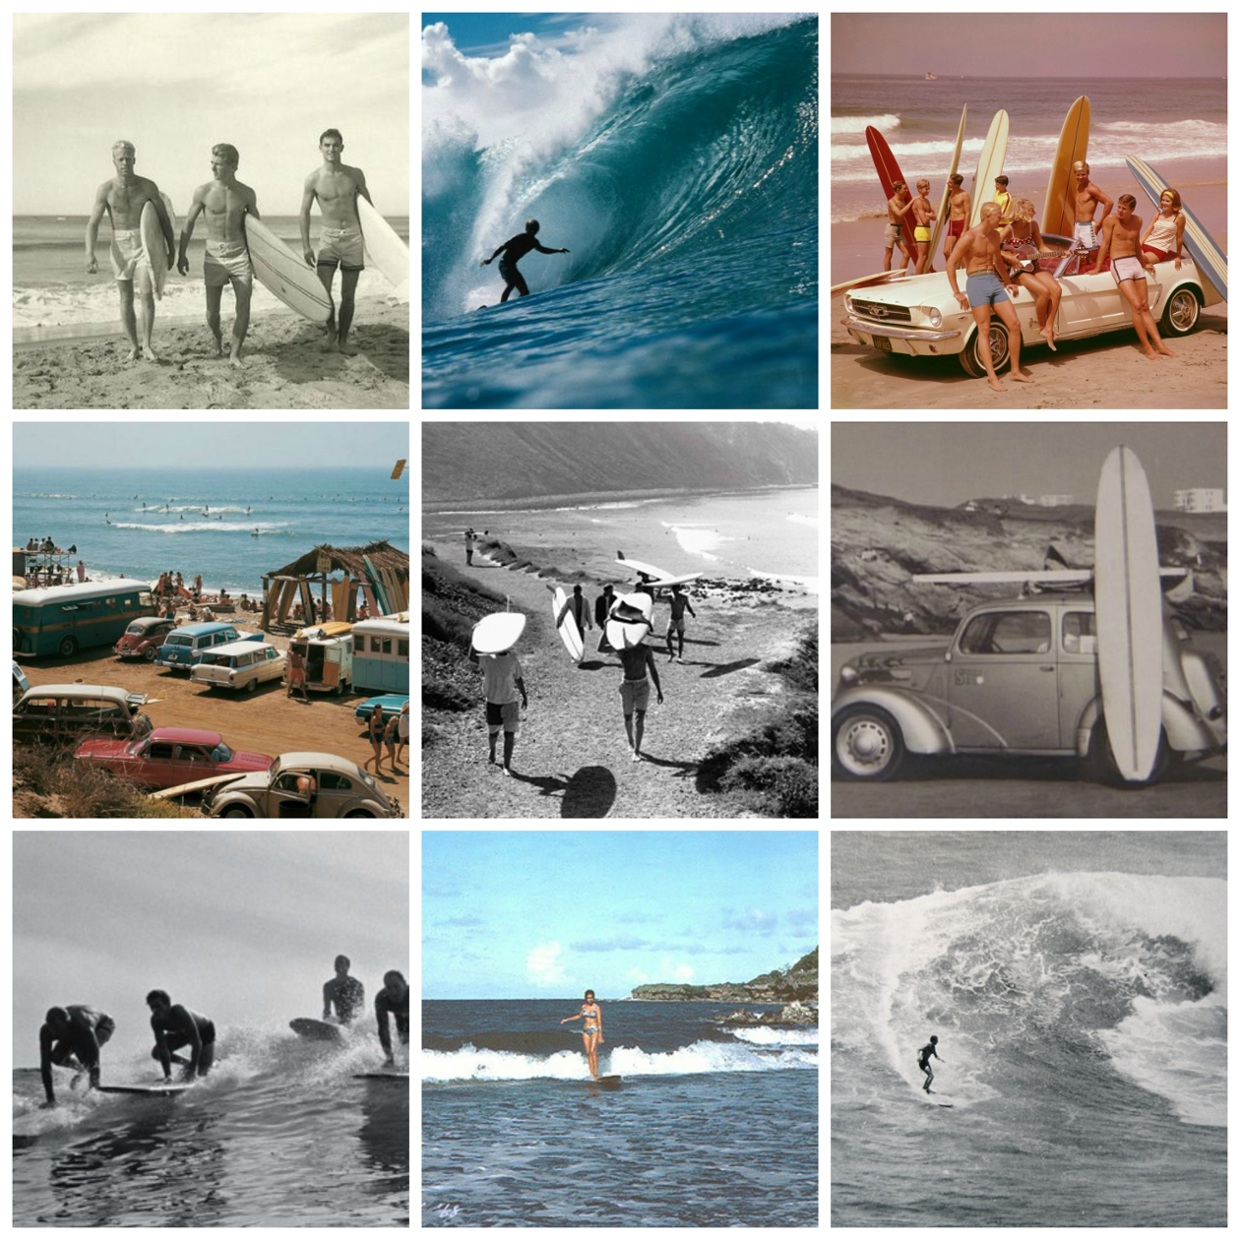 Surf culture in the 60's